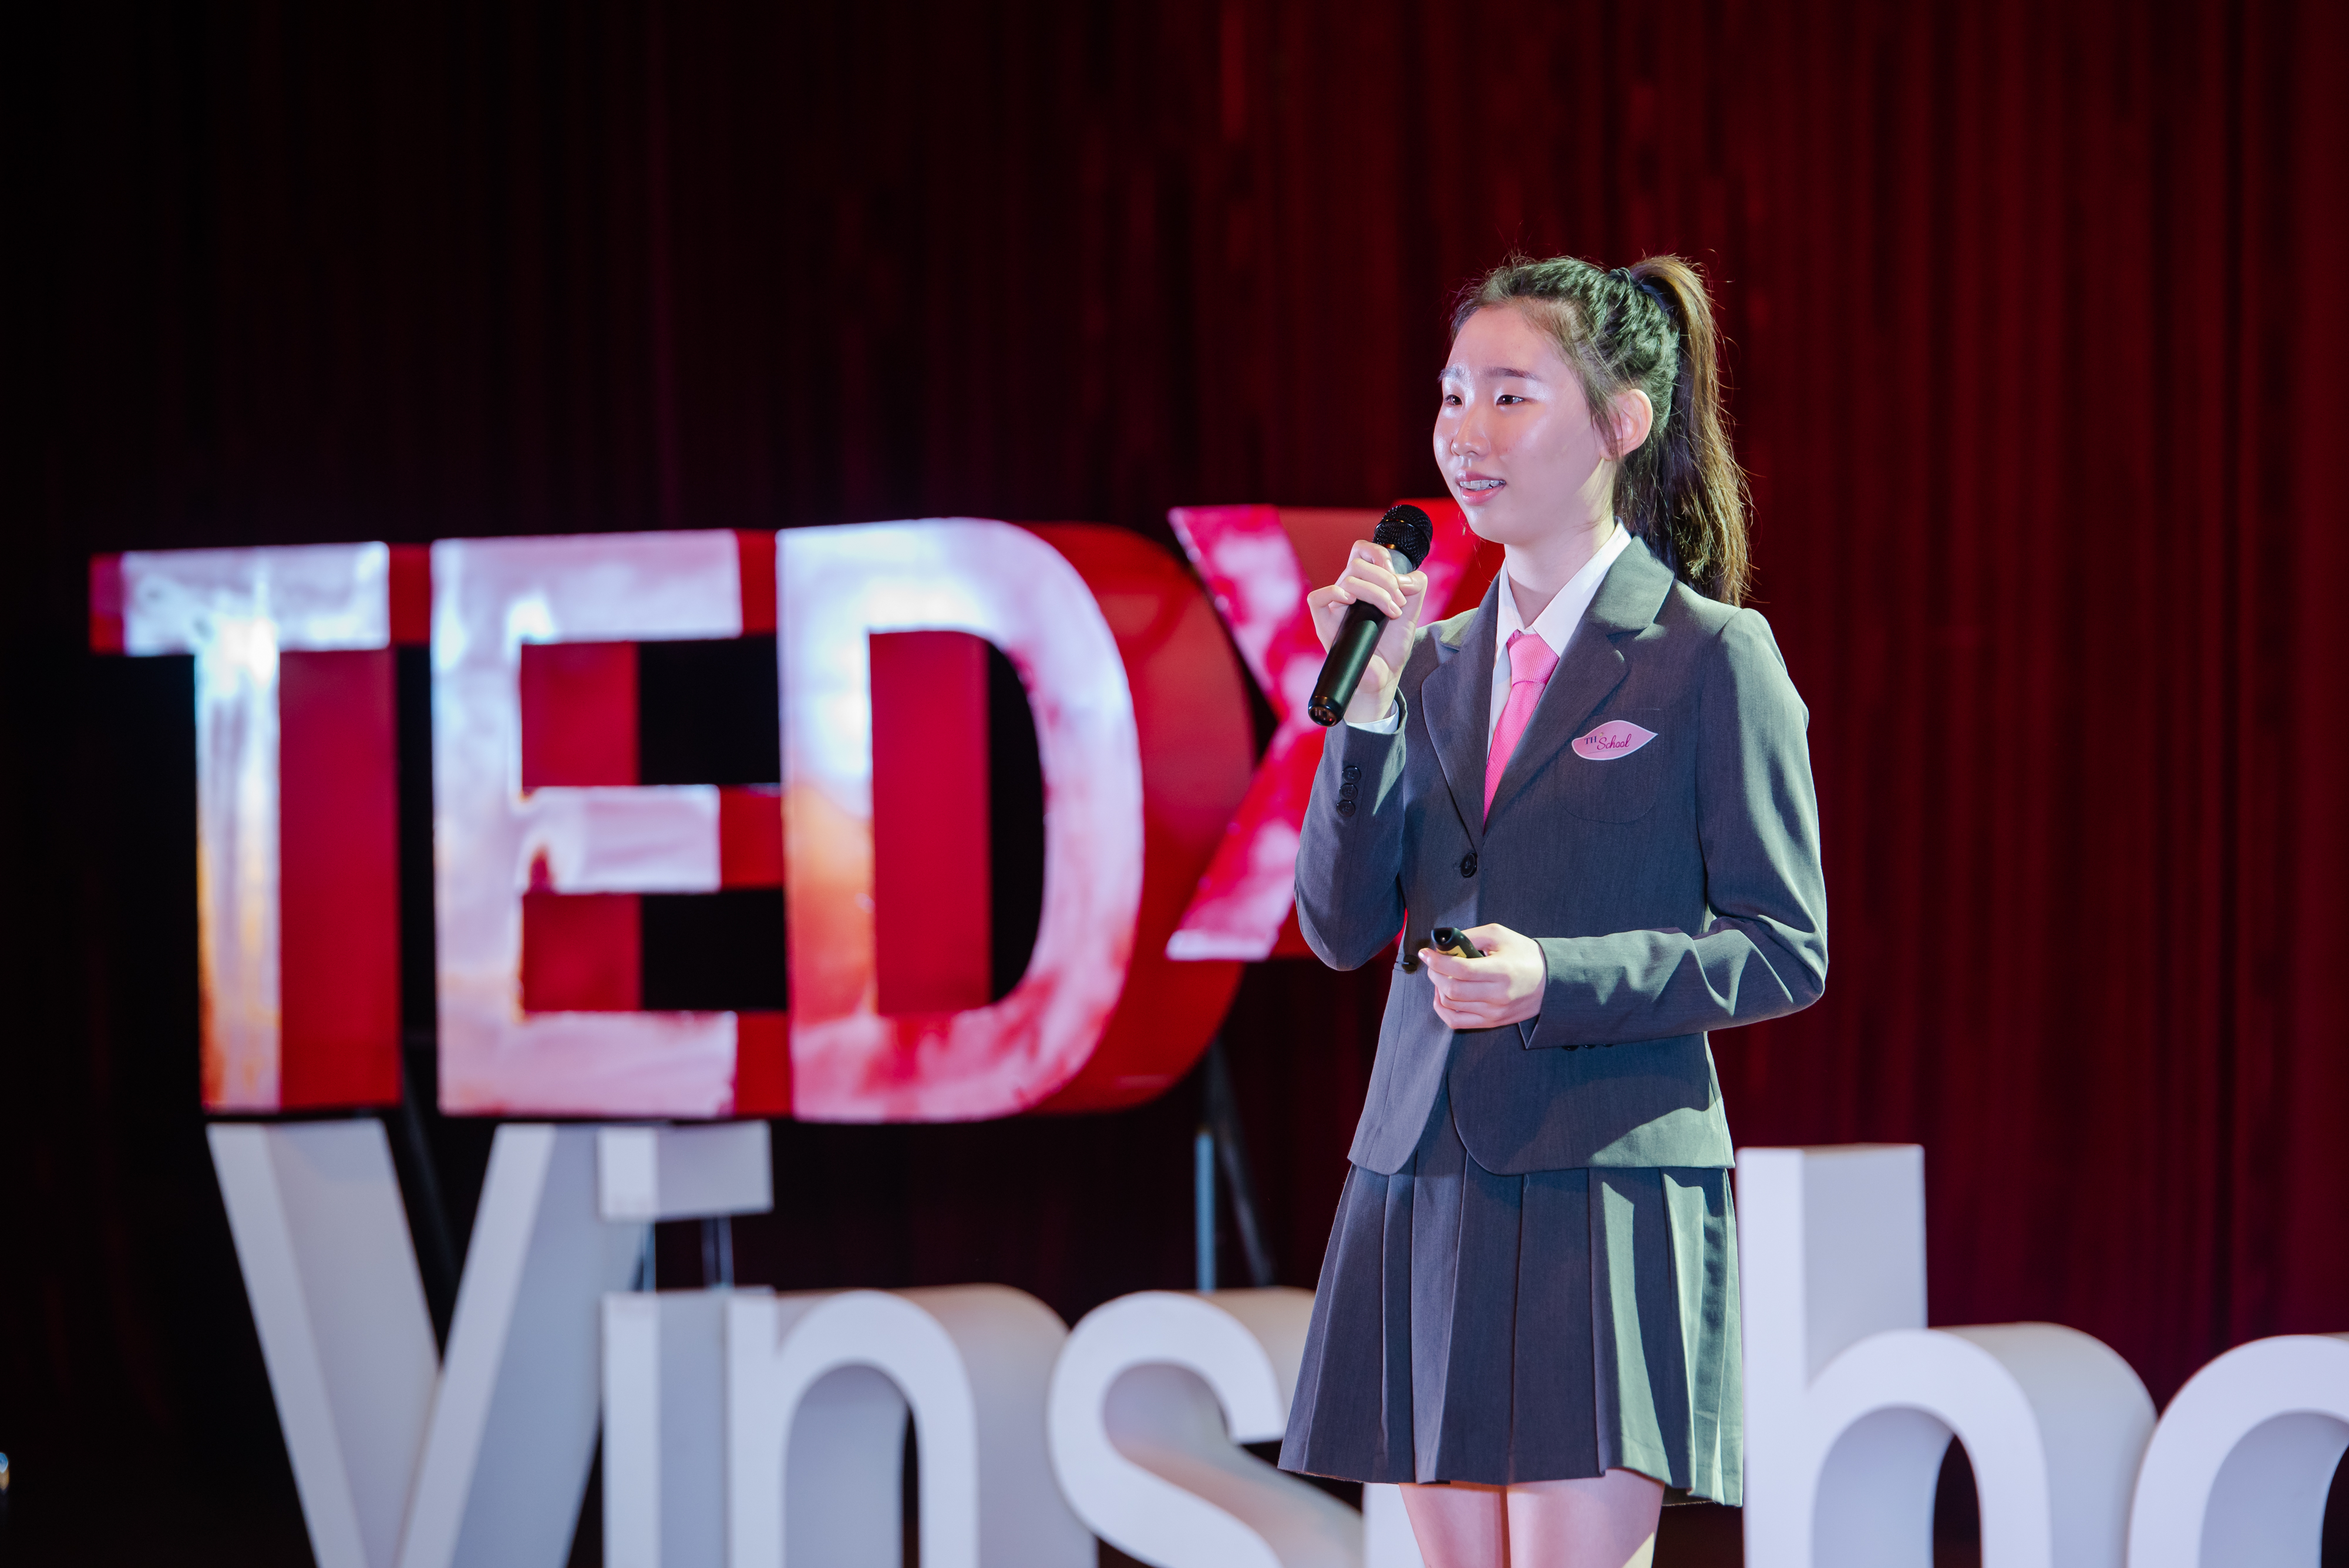 Leaders with Blinders on   Hyewon Kang   TEDxVinschoolHanoi